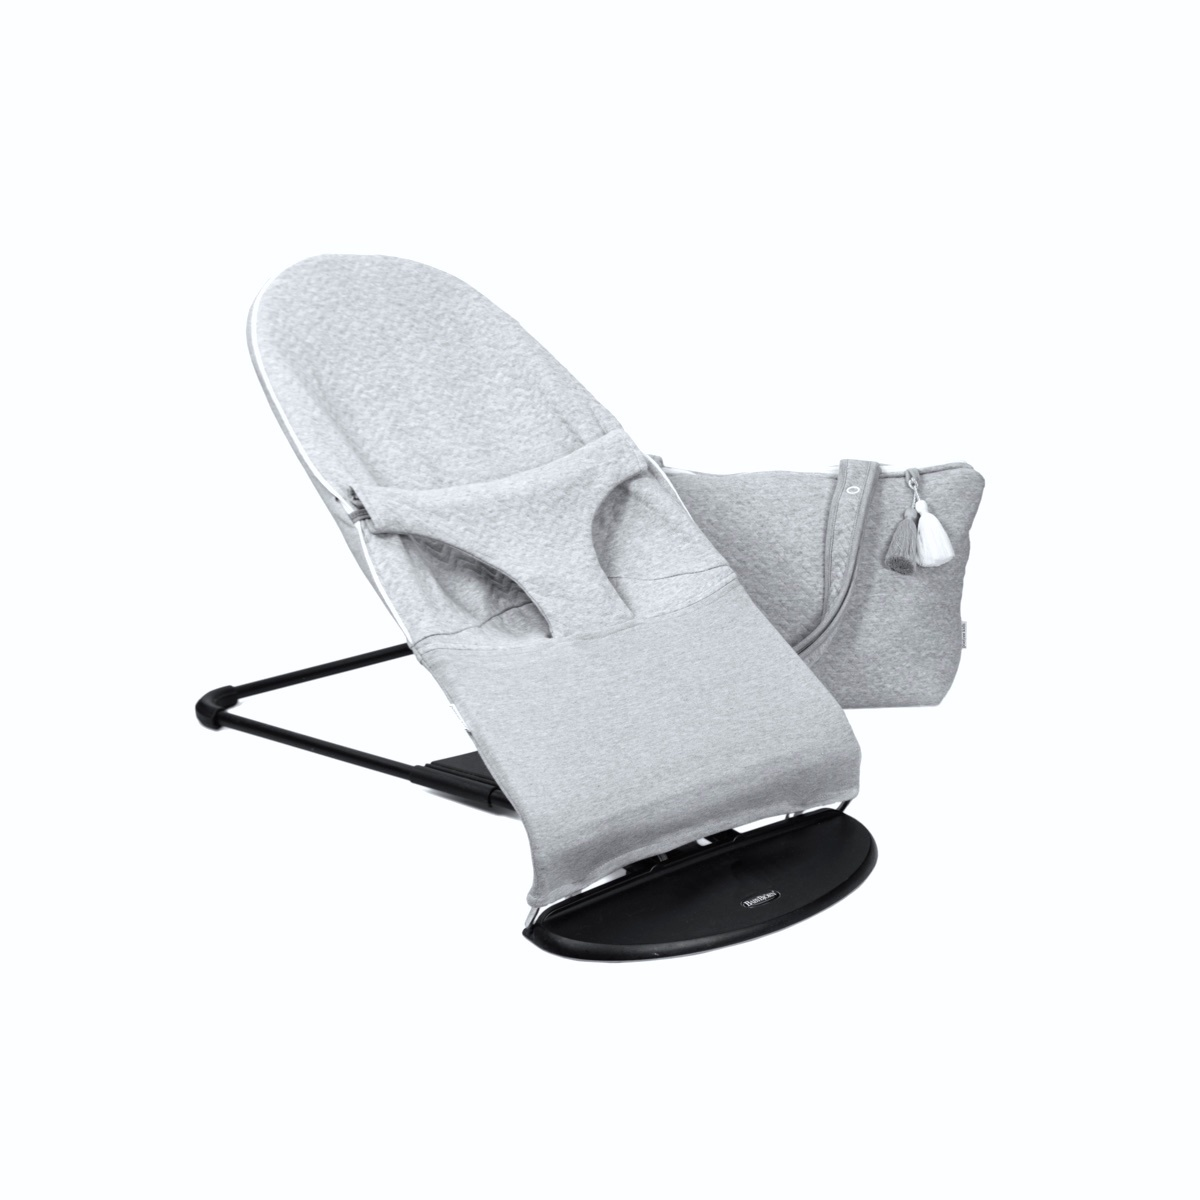 Protective cover for the BabyBjörn bouncer Chevron Light Grey Melange-2